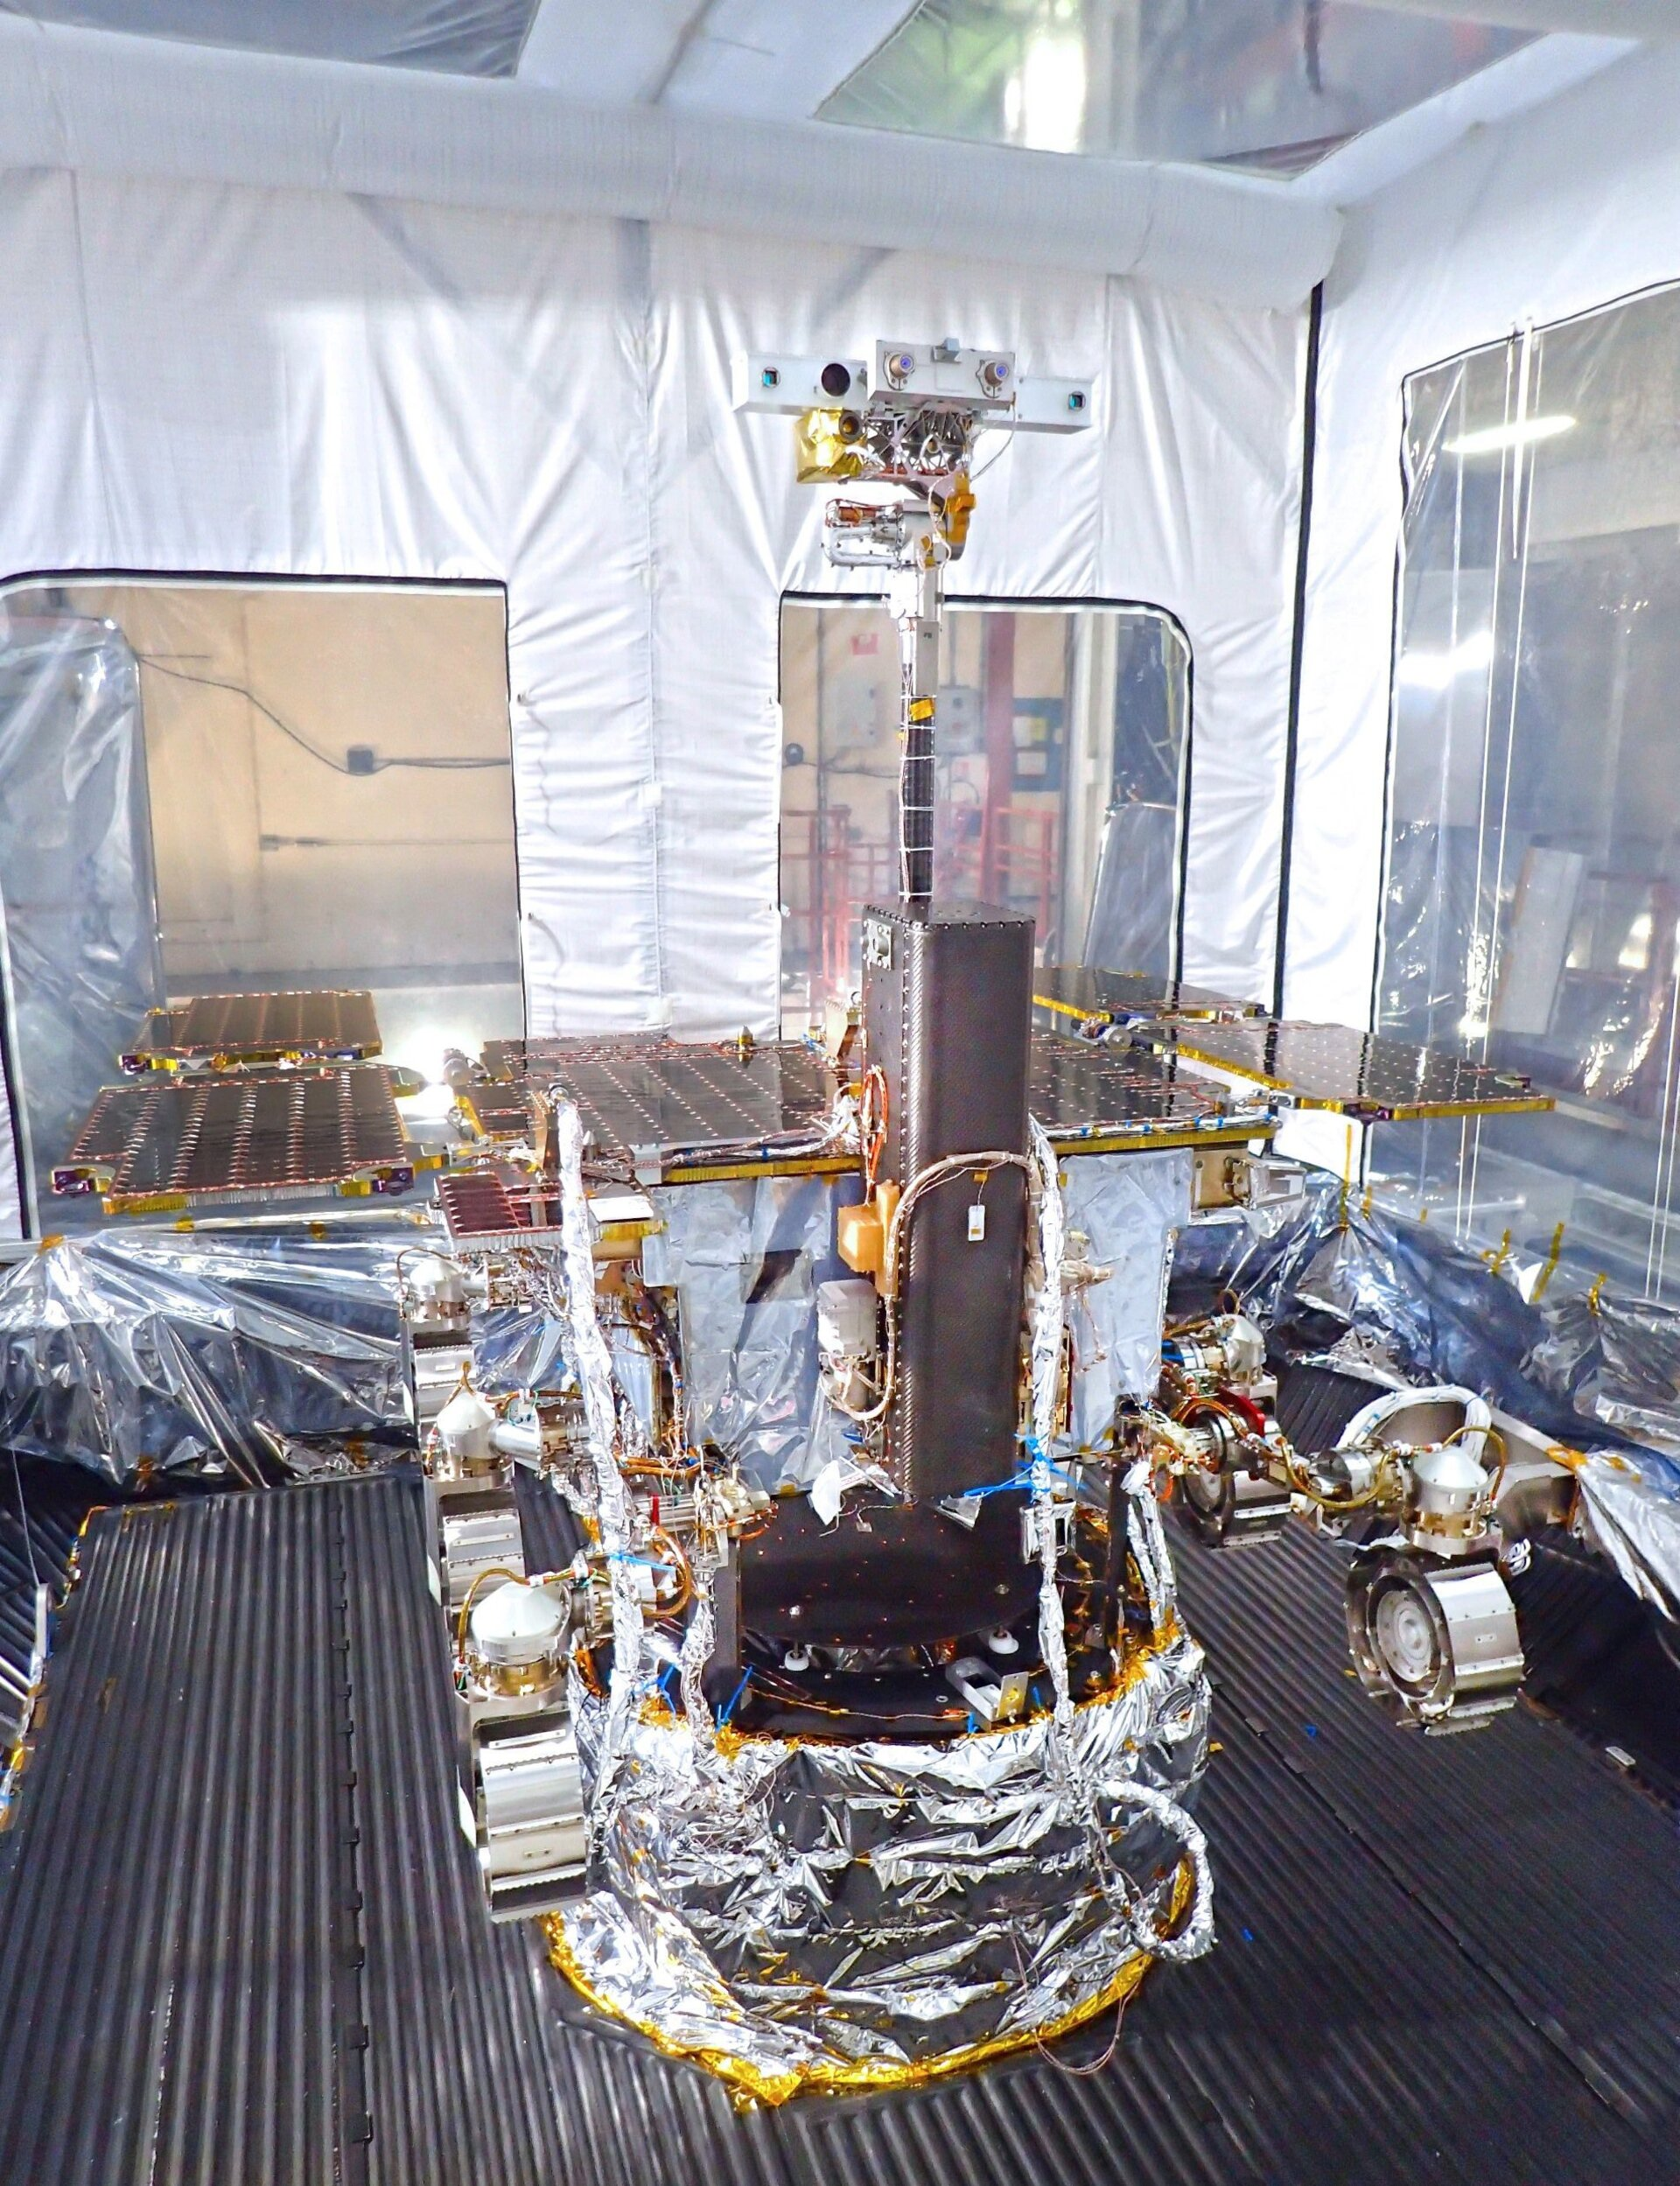 ExoMars rover during environmental tests